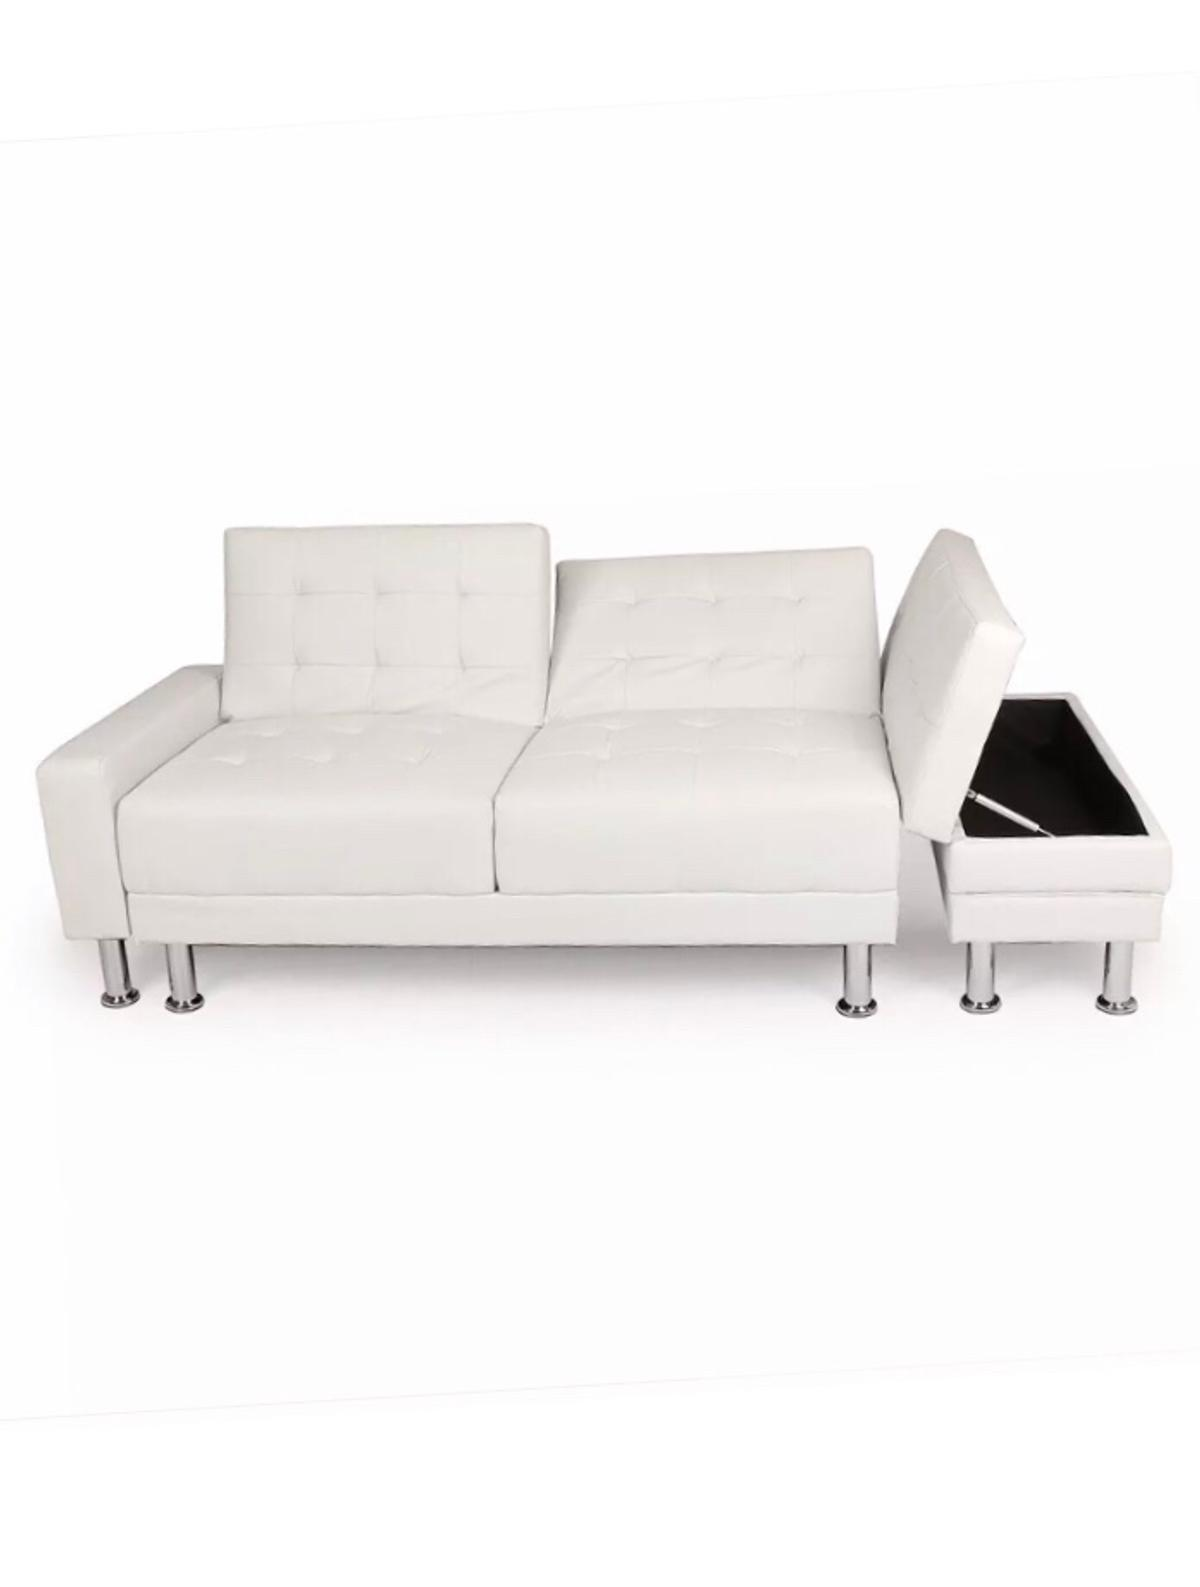 White Sofa/ Sofa bed